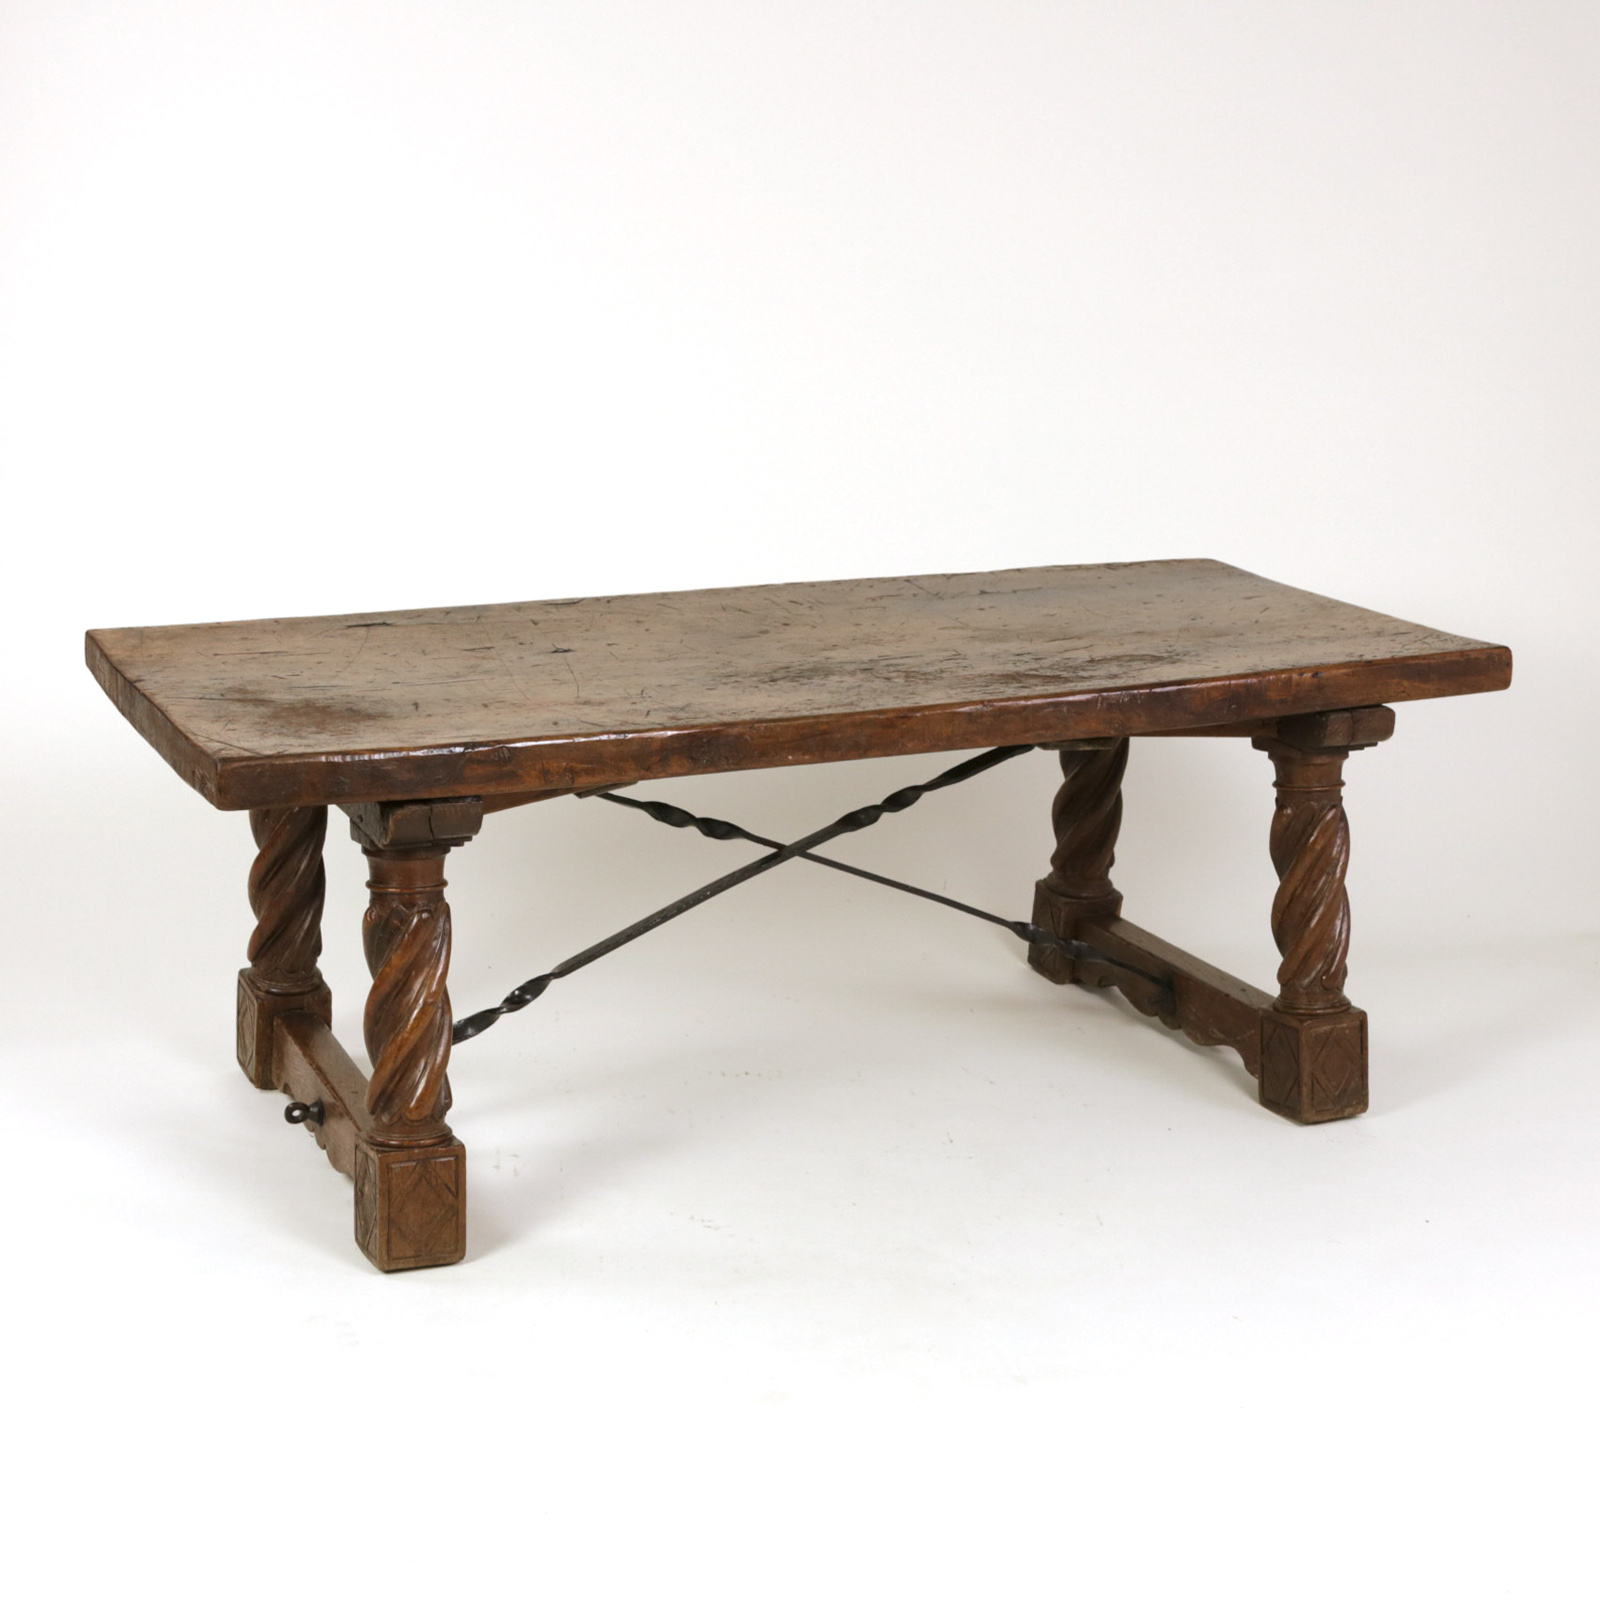 Italian Walnut Low Table With Carved Barley Twist Legs And Twisted Iron Cross Stretchers Circa